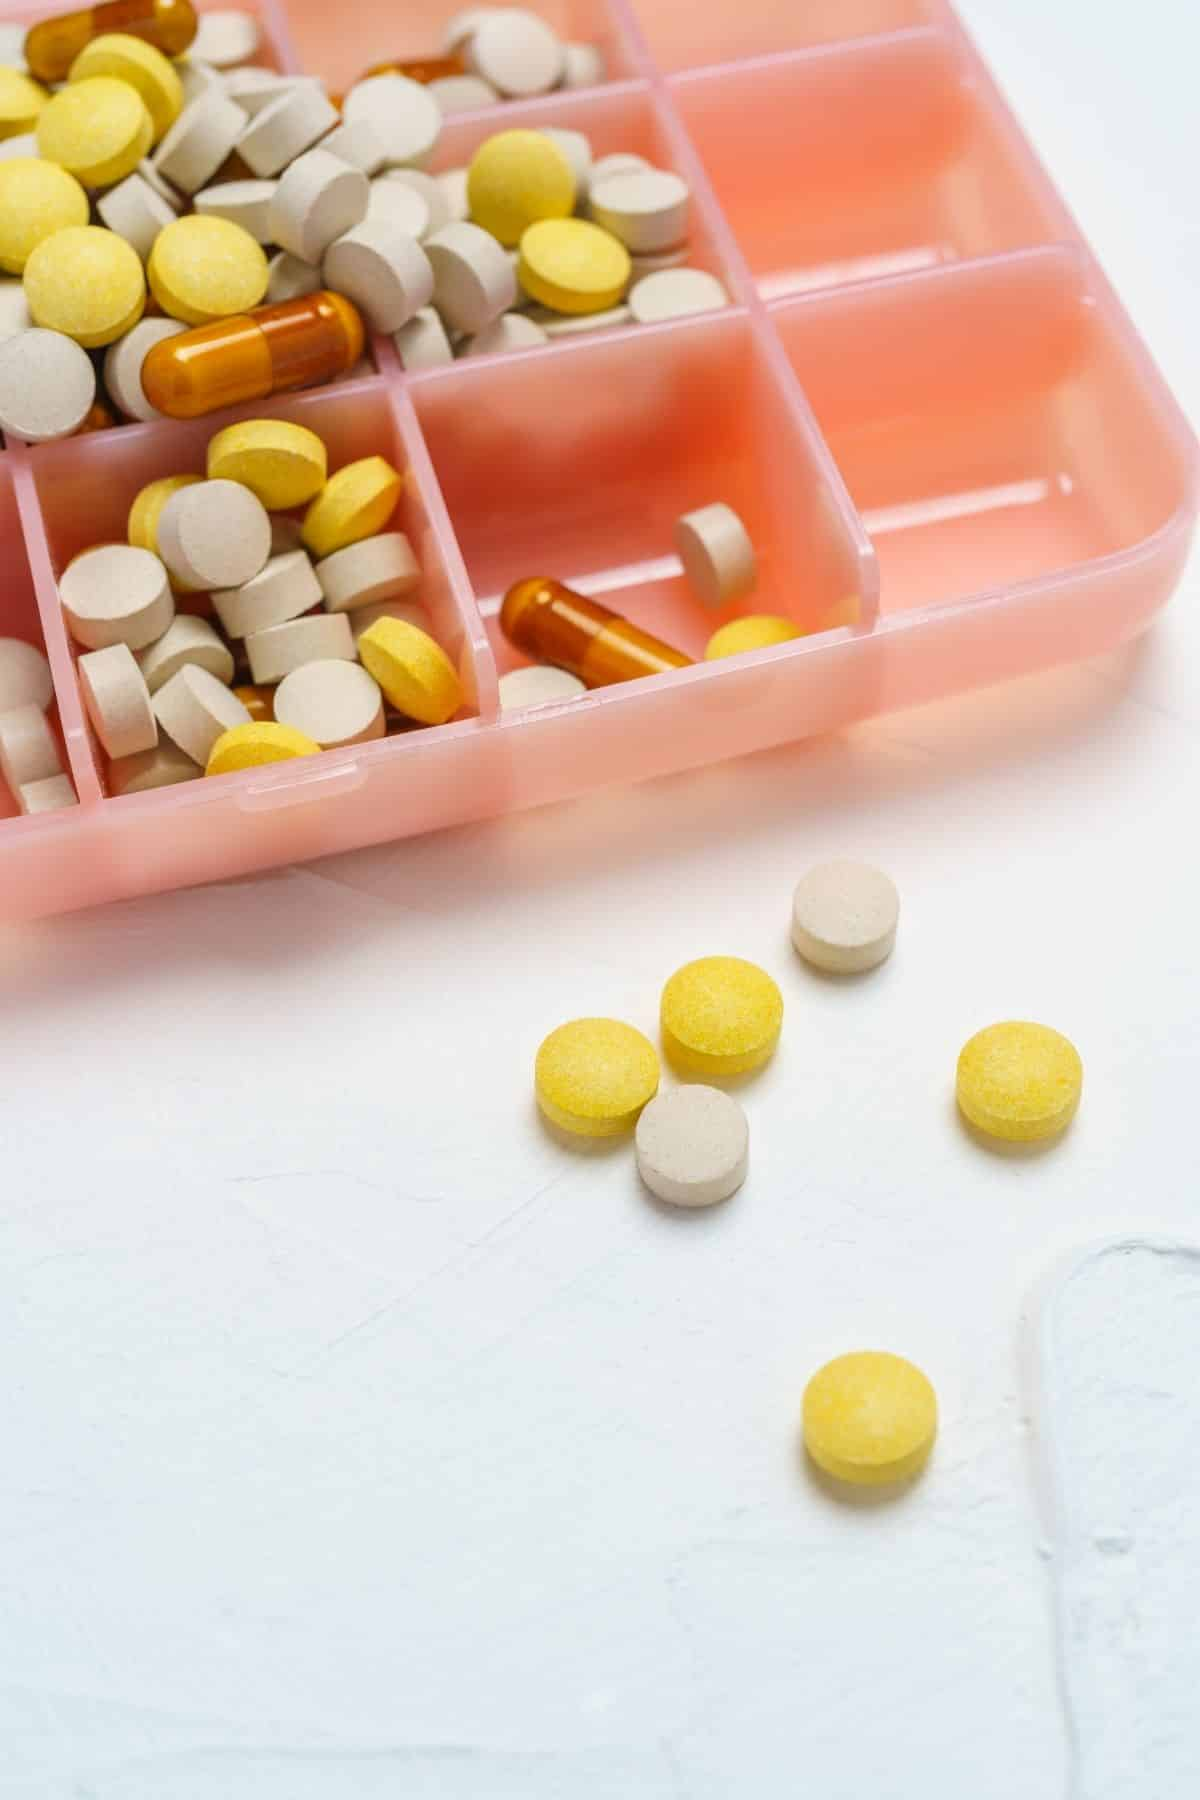 pink pill holder with tablets and capsules